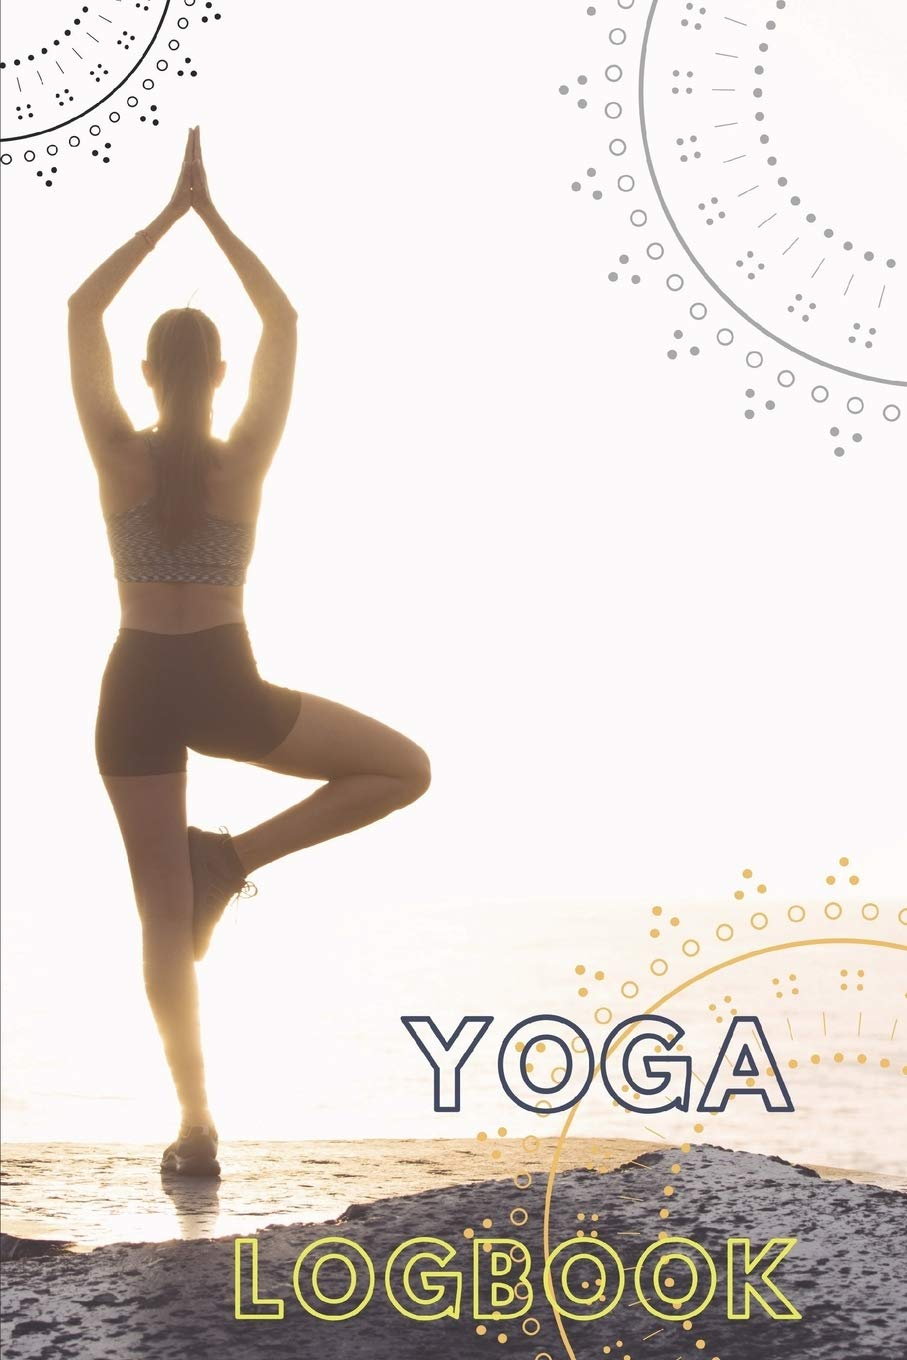 Buy Yoga Logbook Journal For Tracking Poses And Classes Notebook Includes Lined Paper With Inspirational Quotes Book Online At Low Prices In India Yoga Logbook Journal For Tracking Poses And